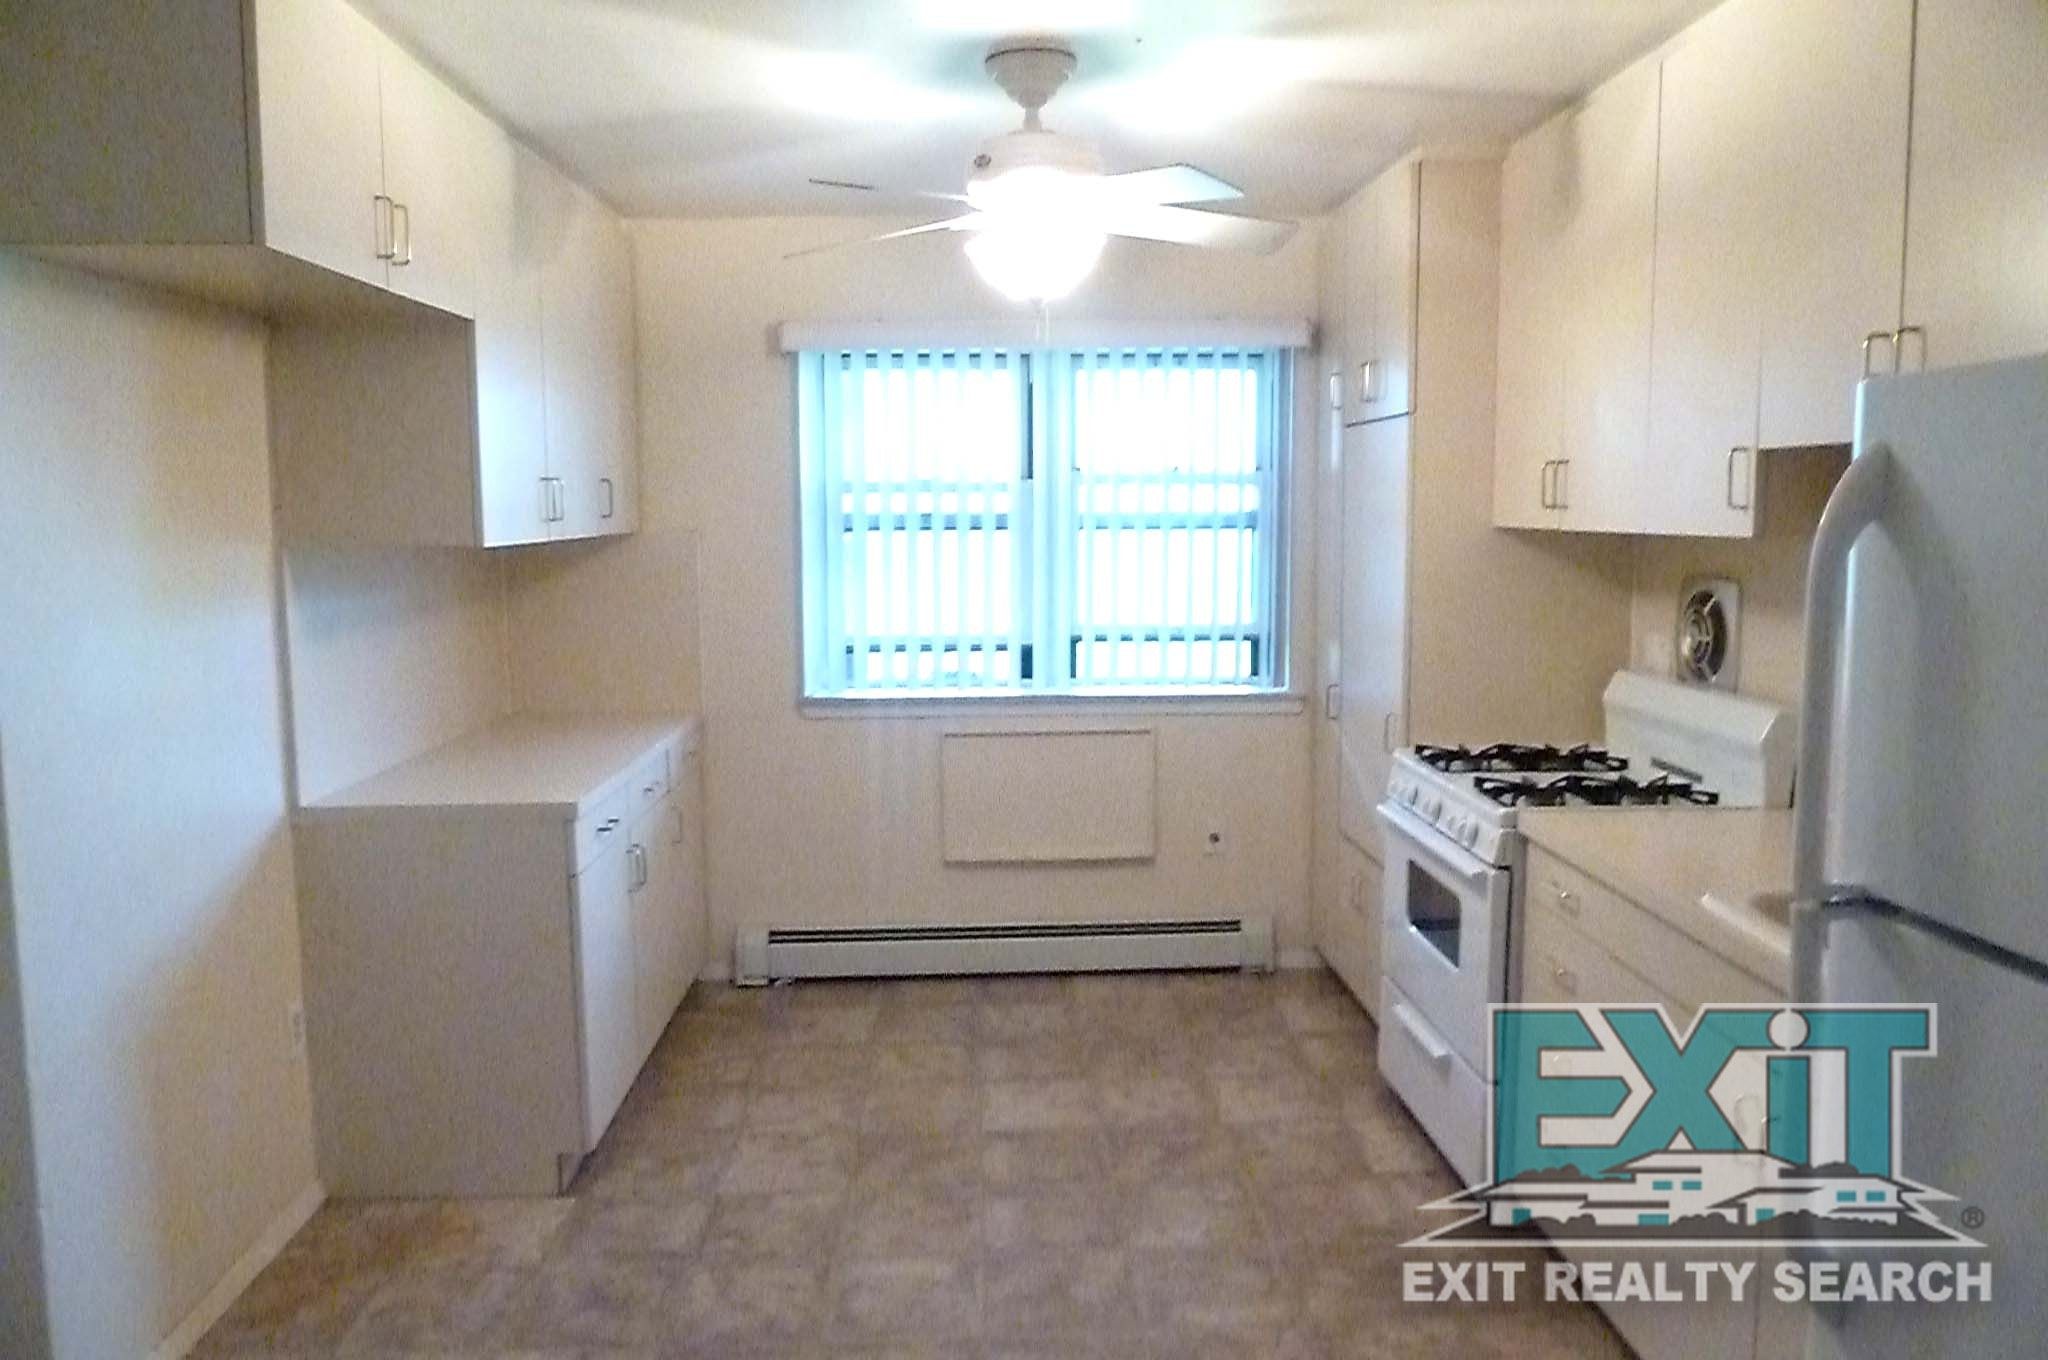 16 patricia ln 208 bronx ny 10465 2 bedroom apartment - 2 bedroom apartments for rent in bronx ...